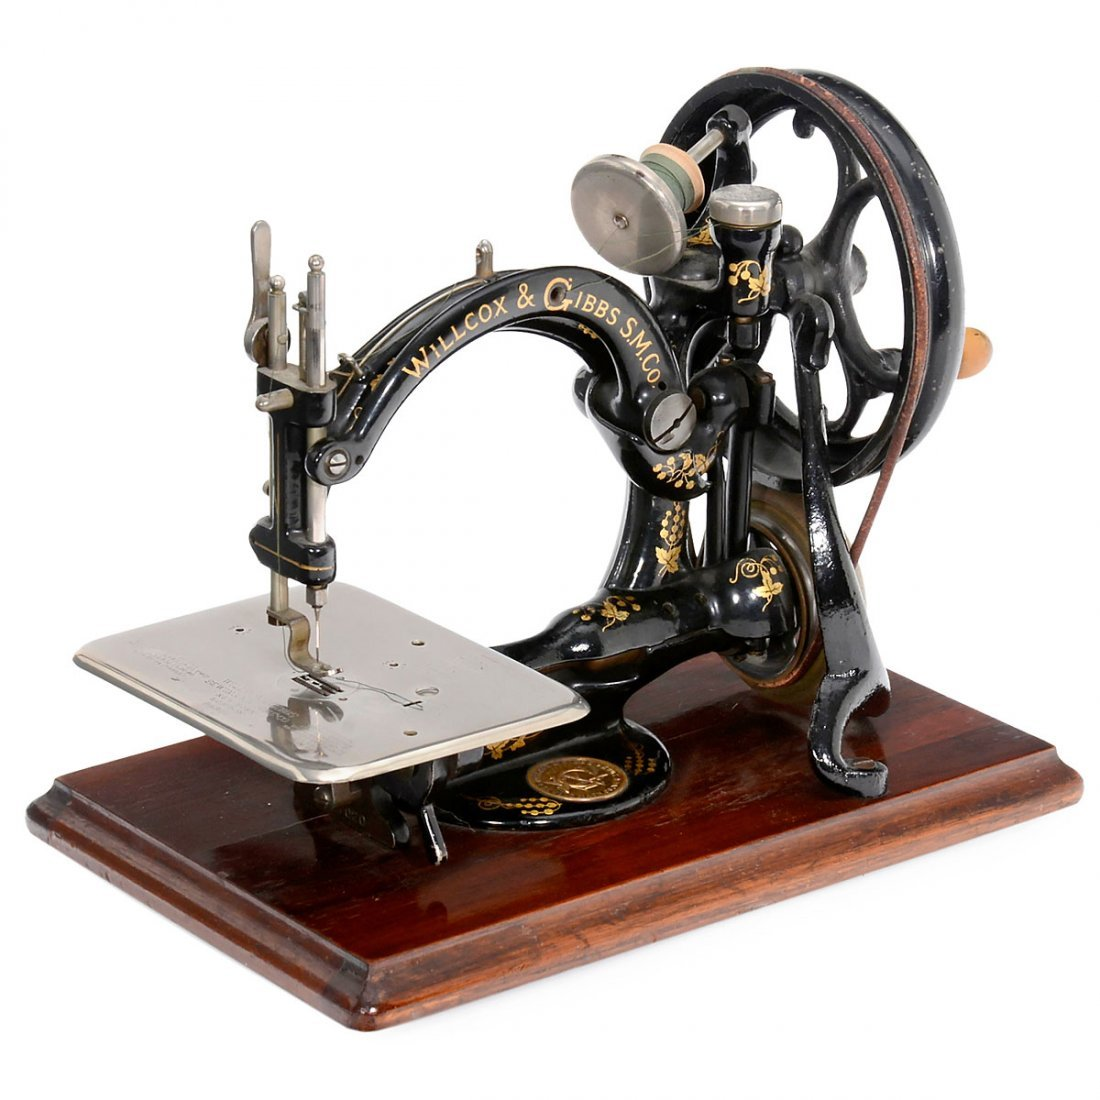 Willcox & Gibbs Sewing Machine, 1872